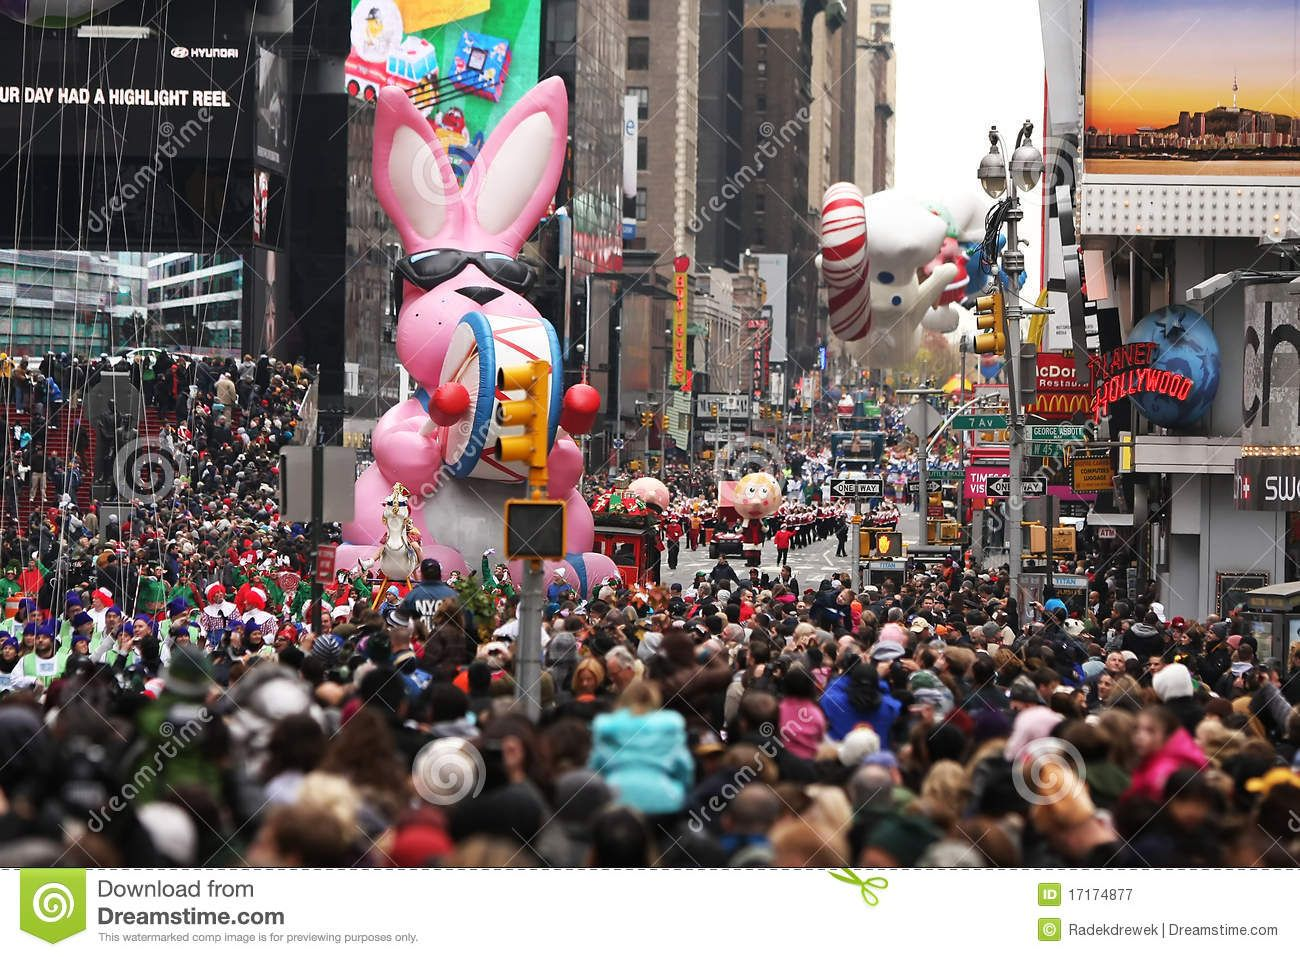 This Was Shot In New York City On The Times Square Nov 25 2010 Thousands Of People Took Part In The 84rd Macy S Thanksgiving Day Para Thanksgiving Day Parade Balloons Image Photography